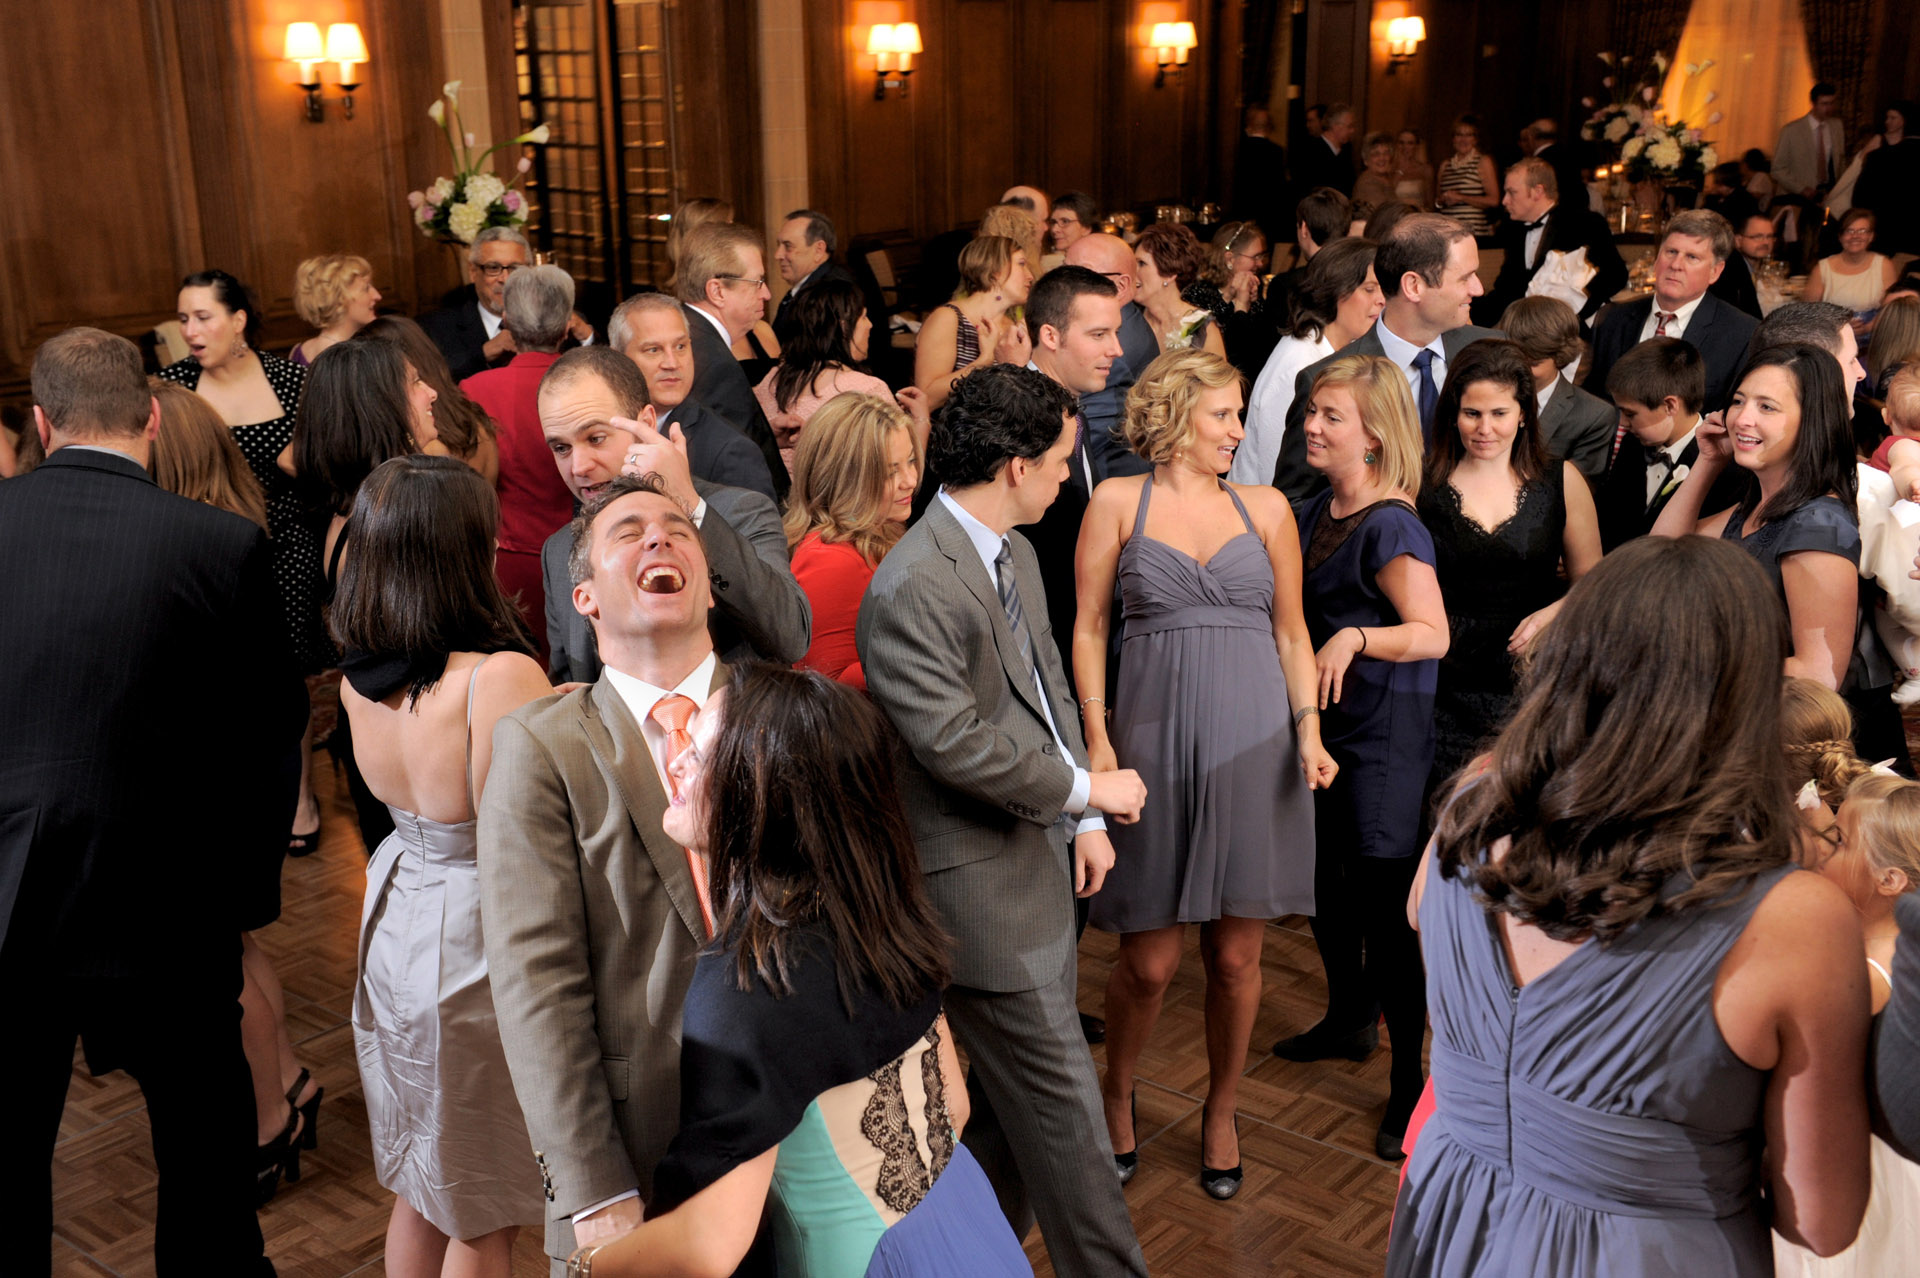 Michigan wedding in Detroit, Michigan, featured the bride and groom's guests filling the dance floor during their wedding reception at the Detroit Athletic Club.